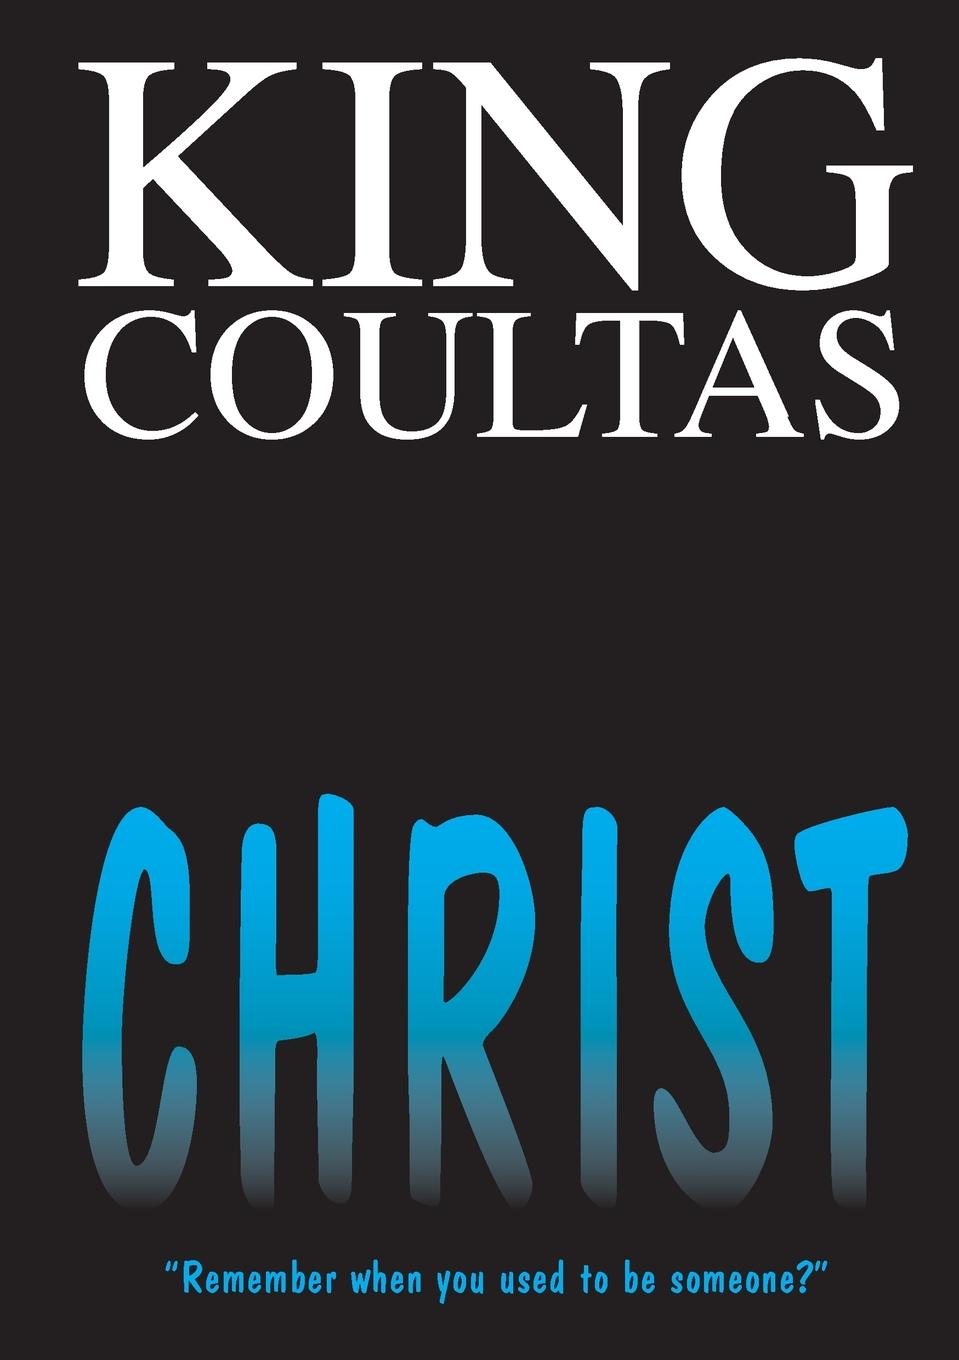 King Coultas CHRIST ghost volume 4 a death in the family